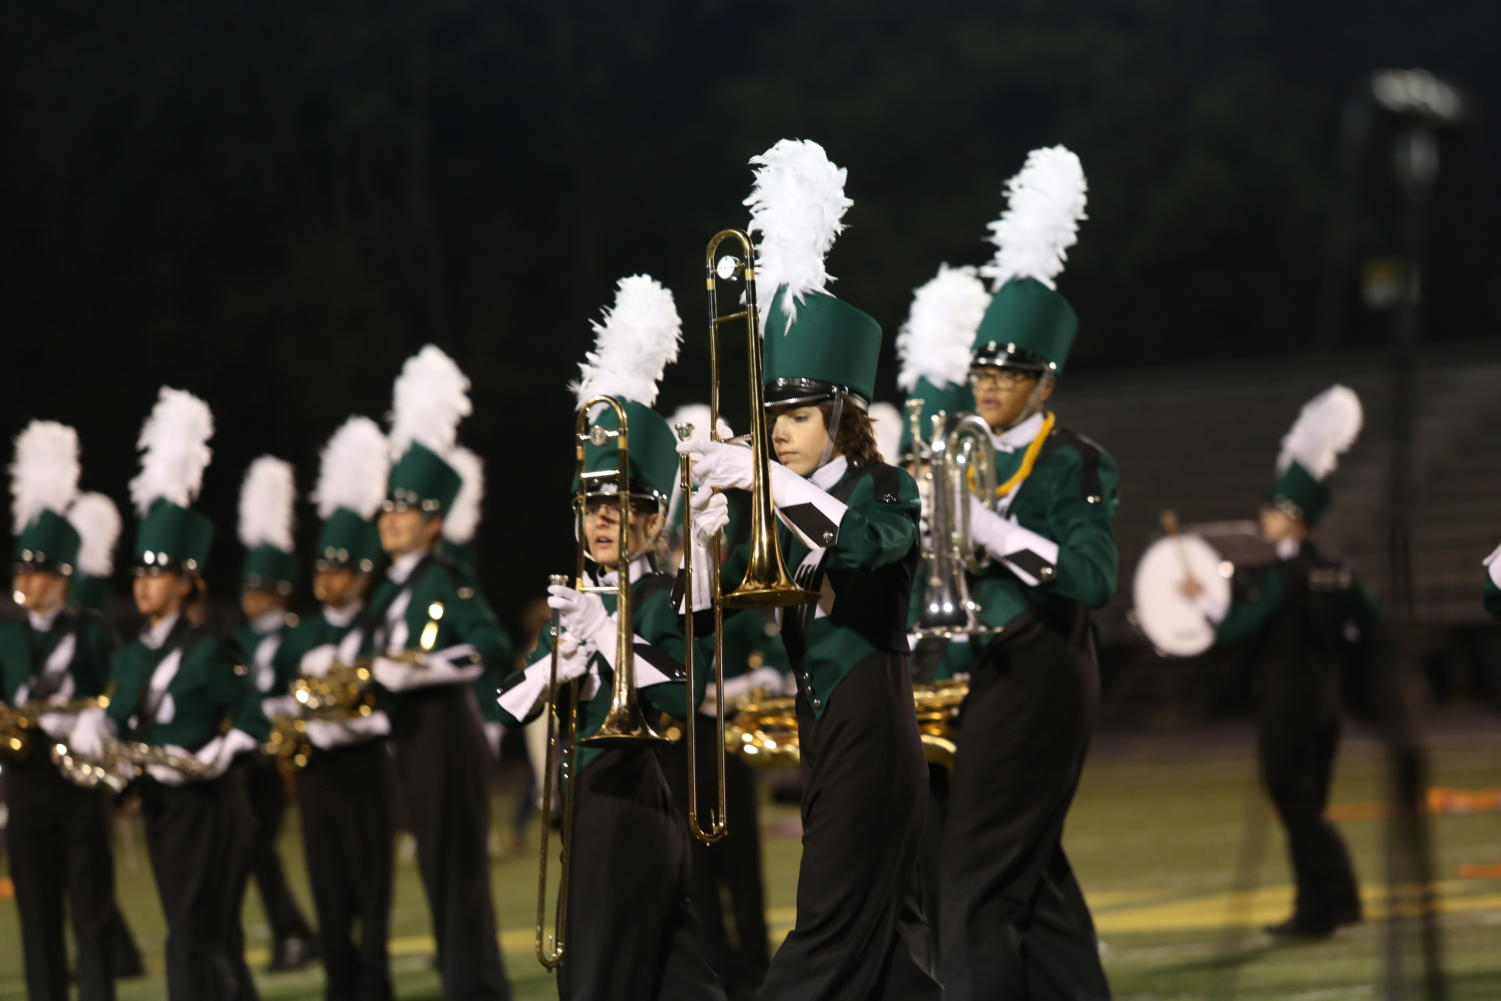 The marching band season is over, with the group performing at Lucas Oil Stadium. The group performed their show Libra in BOA Grand Nationals. Students had to learn how to balance their time with practice and school work.